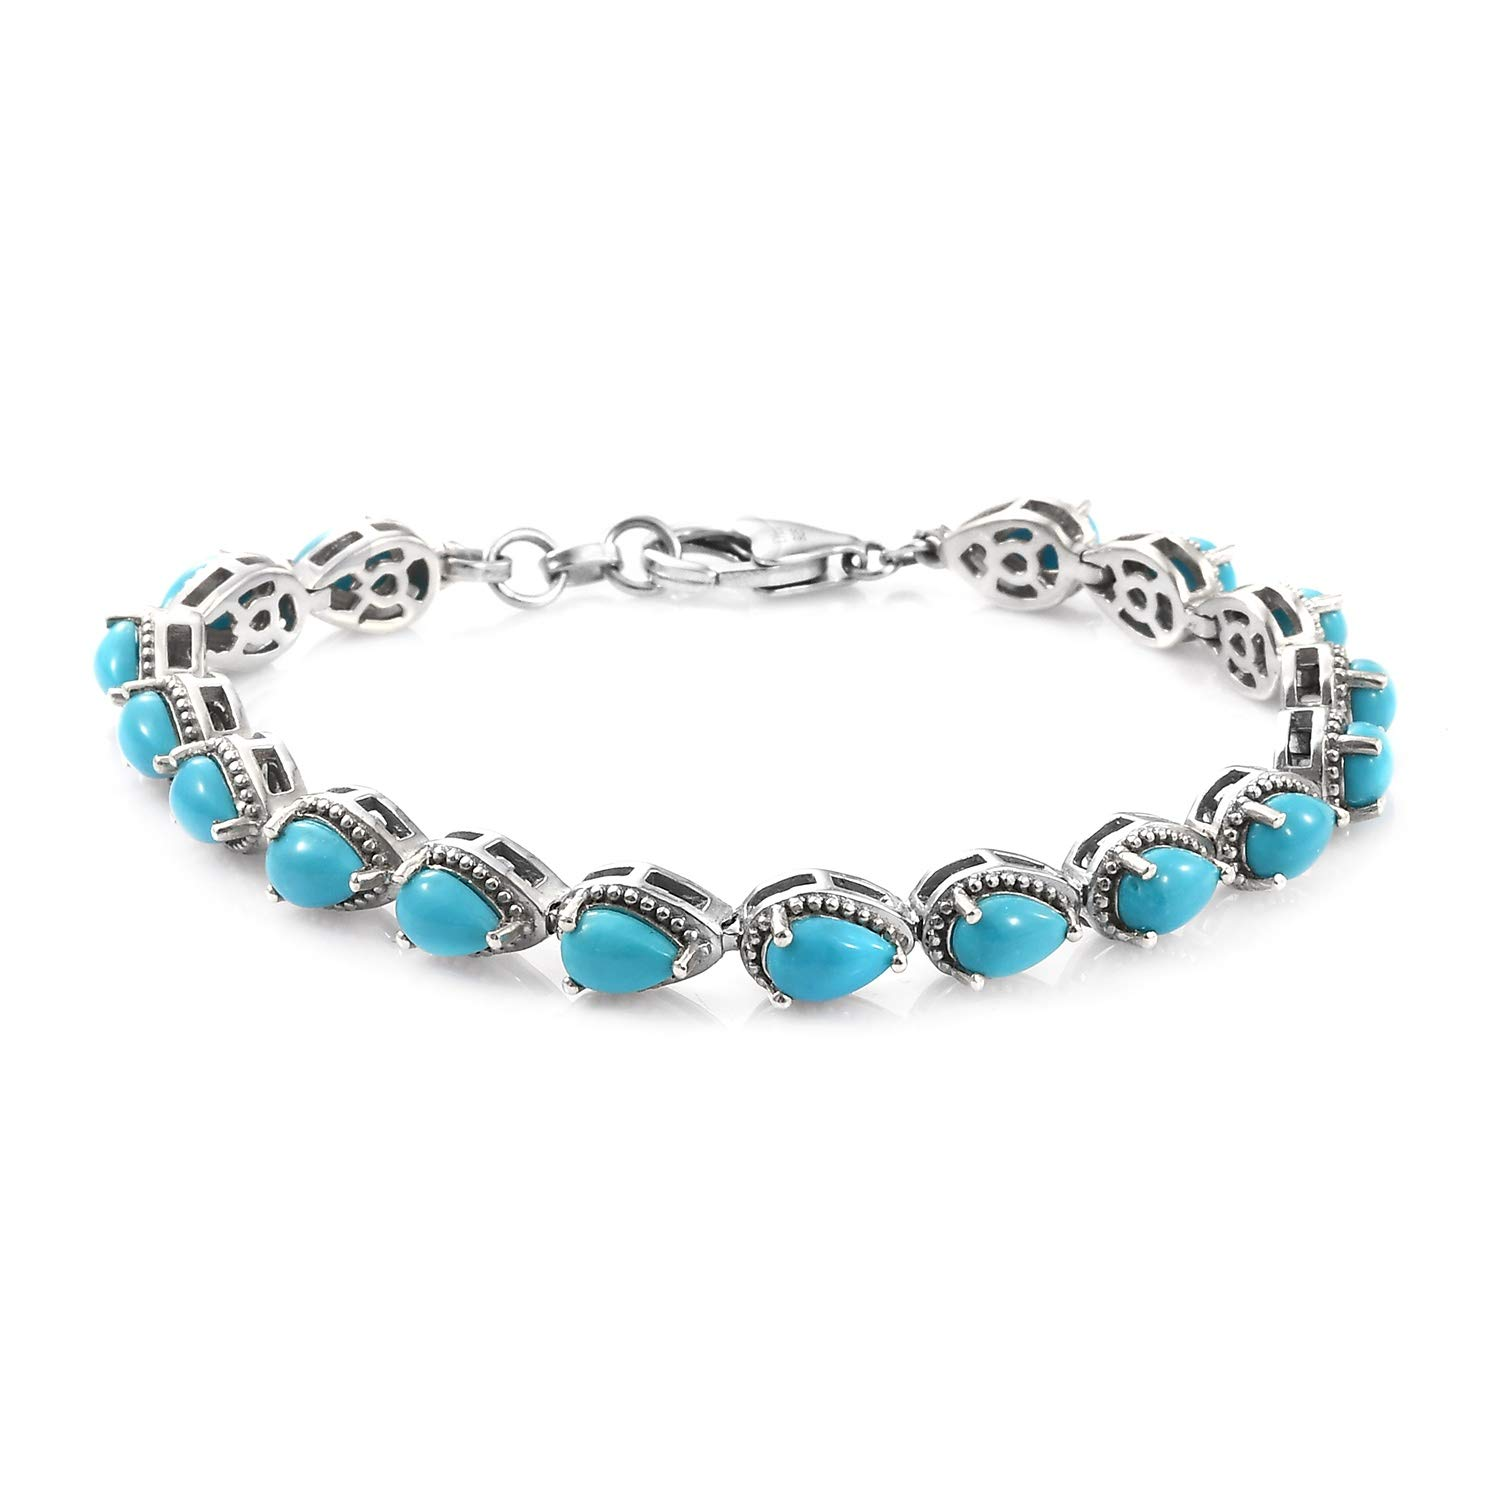 925 Sterling Silver Line Tennis Bracelet Platinum Plated Pear Sleeping Beauty Turquoise Size 6.5'' by Shop LC Delivering Joy